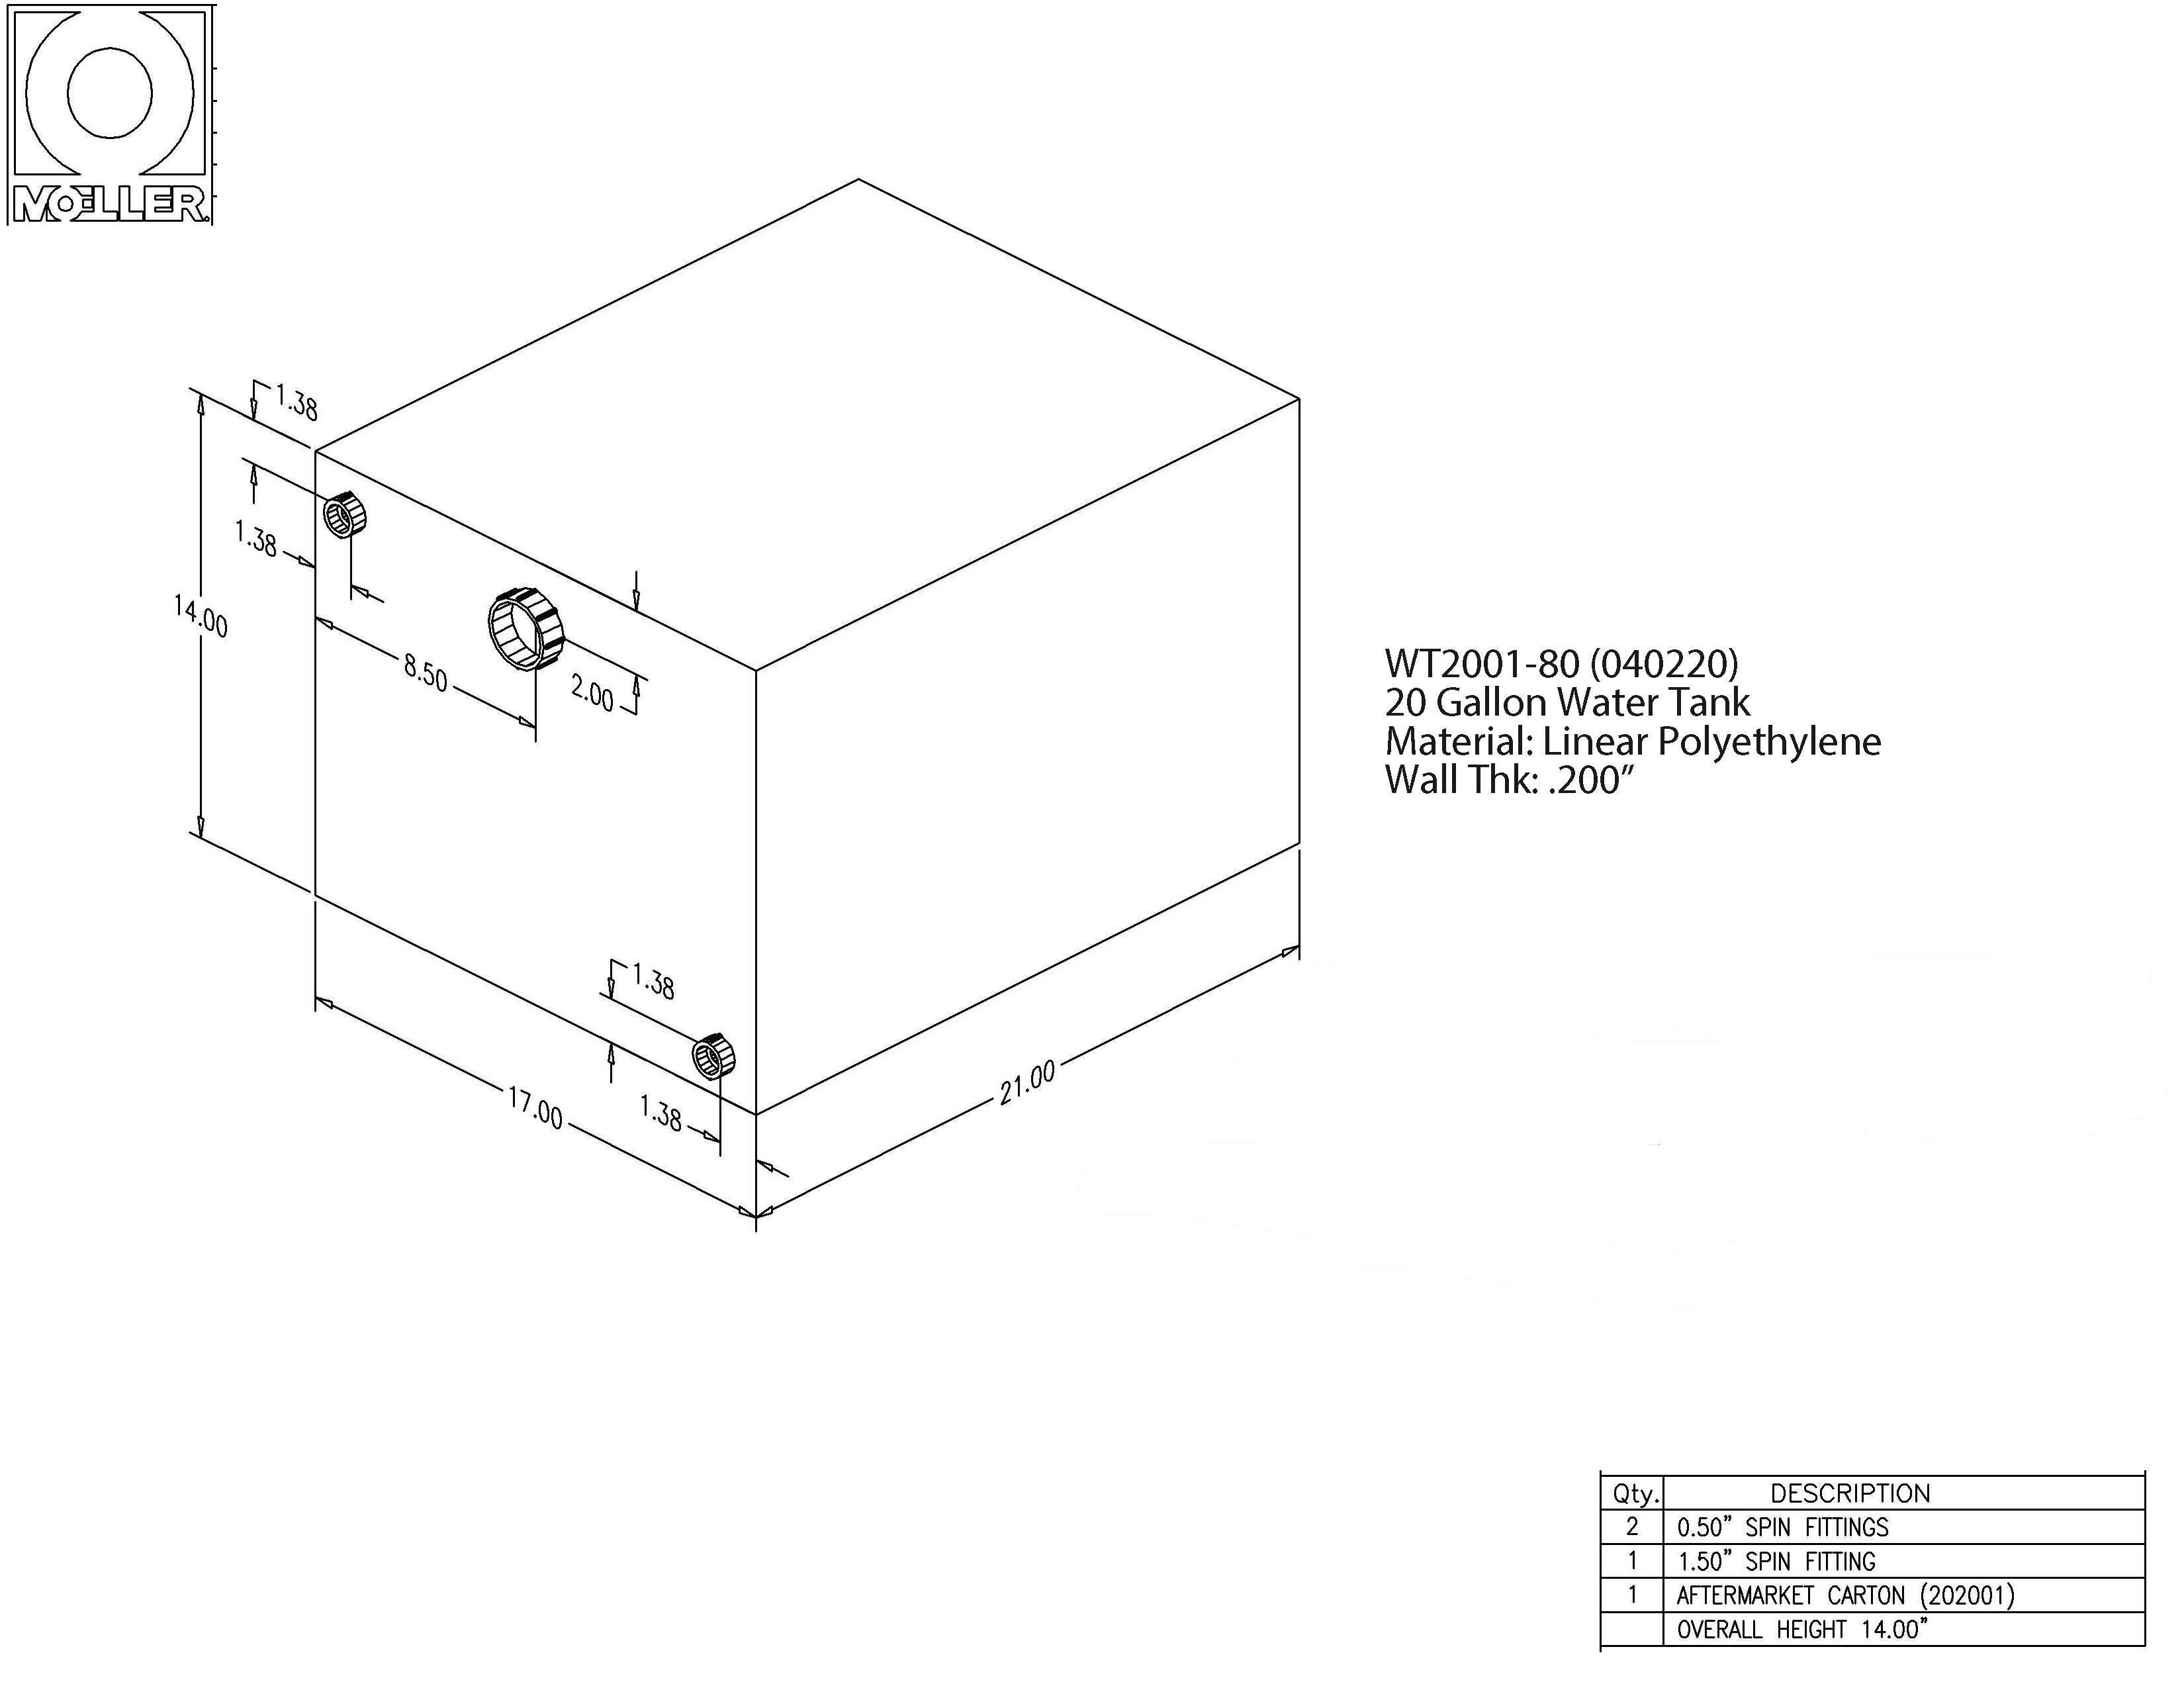 20 Gallon Rectangular Shaped Waste/Water Tank, 21″x17″x14″, WT2001-80 (040220)